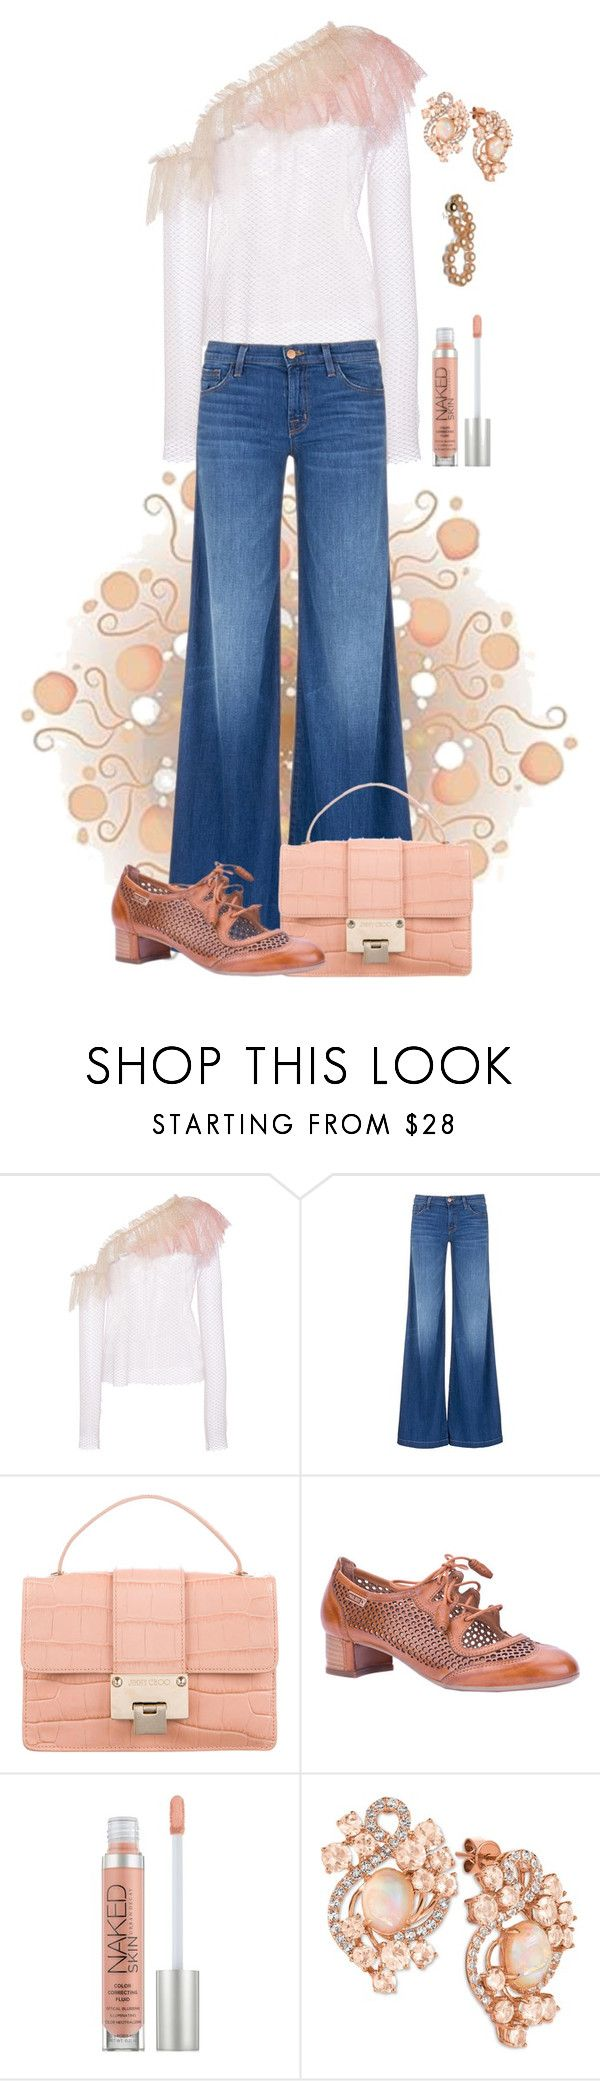 """""""Doin' Just Peachy!"""" by flippintickledinc ❤ liked on Polyvore featuring Philosophy di Lorenzo Serafini, J Brand, Jimmy Choo, Pikolinos, Urban Decay and LE VIAN"""